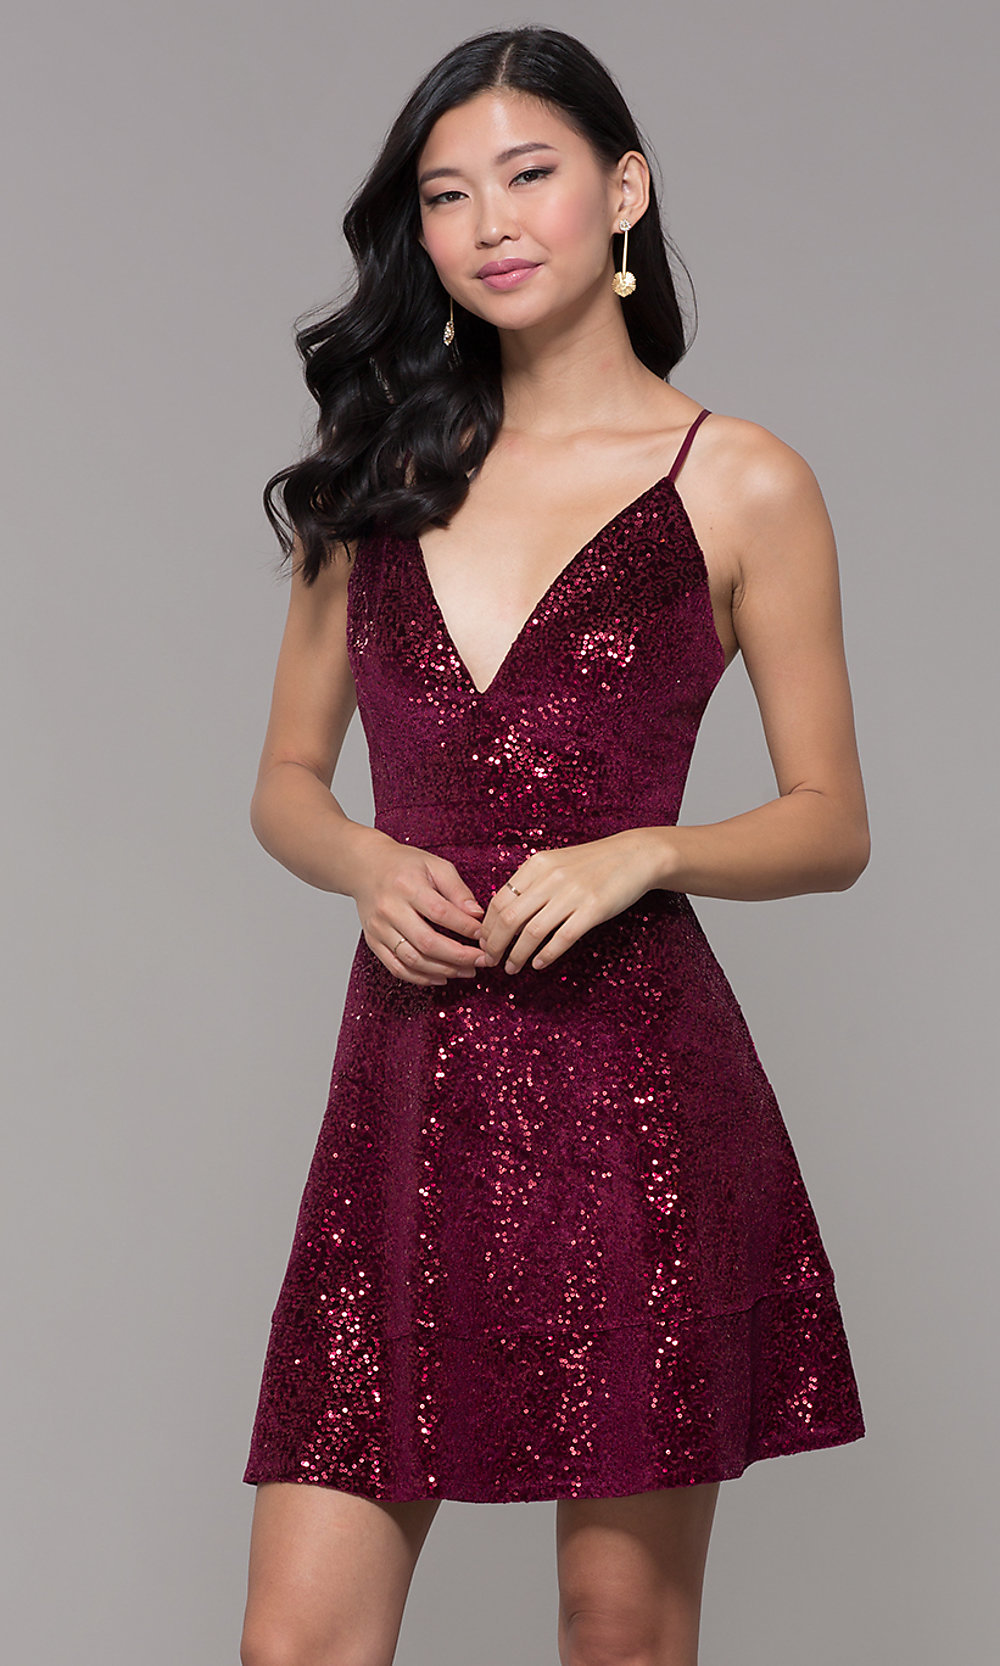 c0b8d4504dd0 Sequin-Velvet Short Holiday Party Dress with Lace